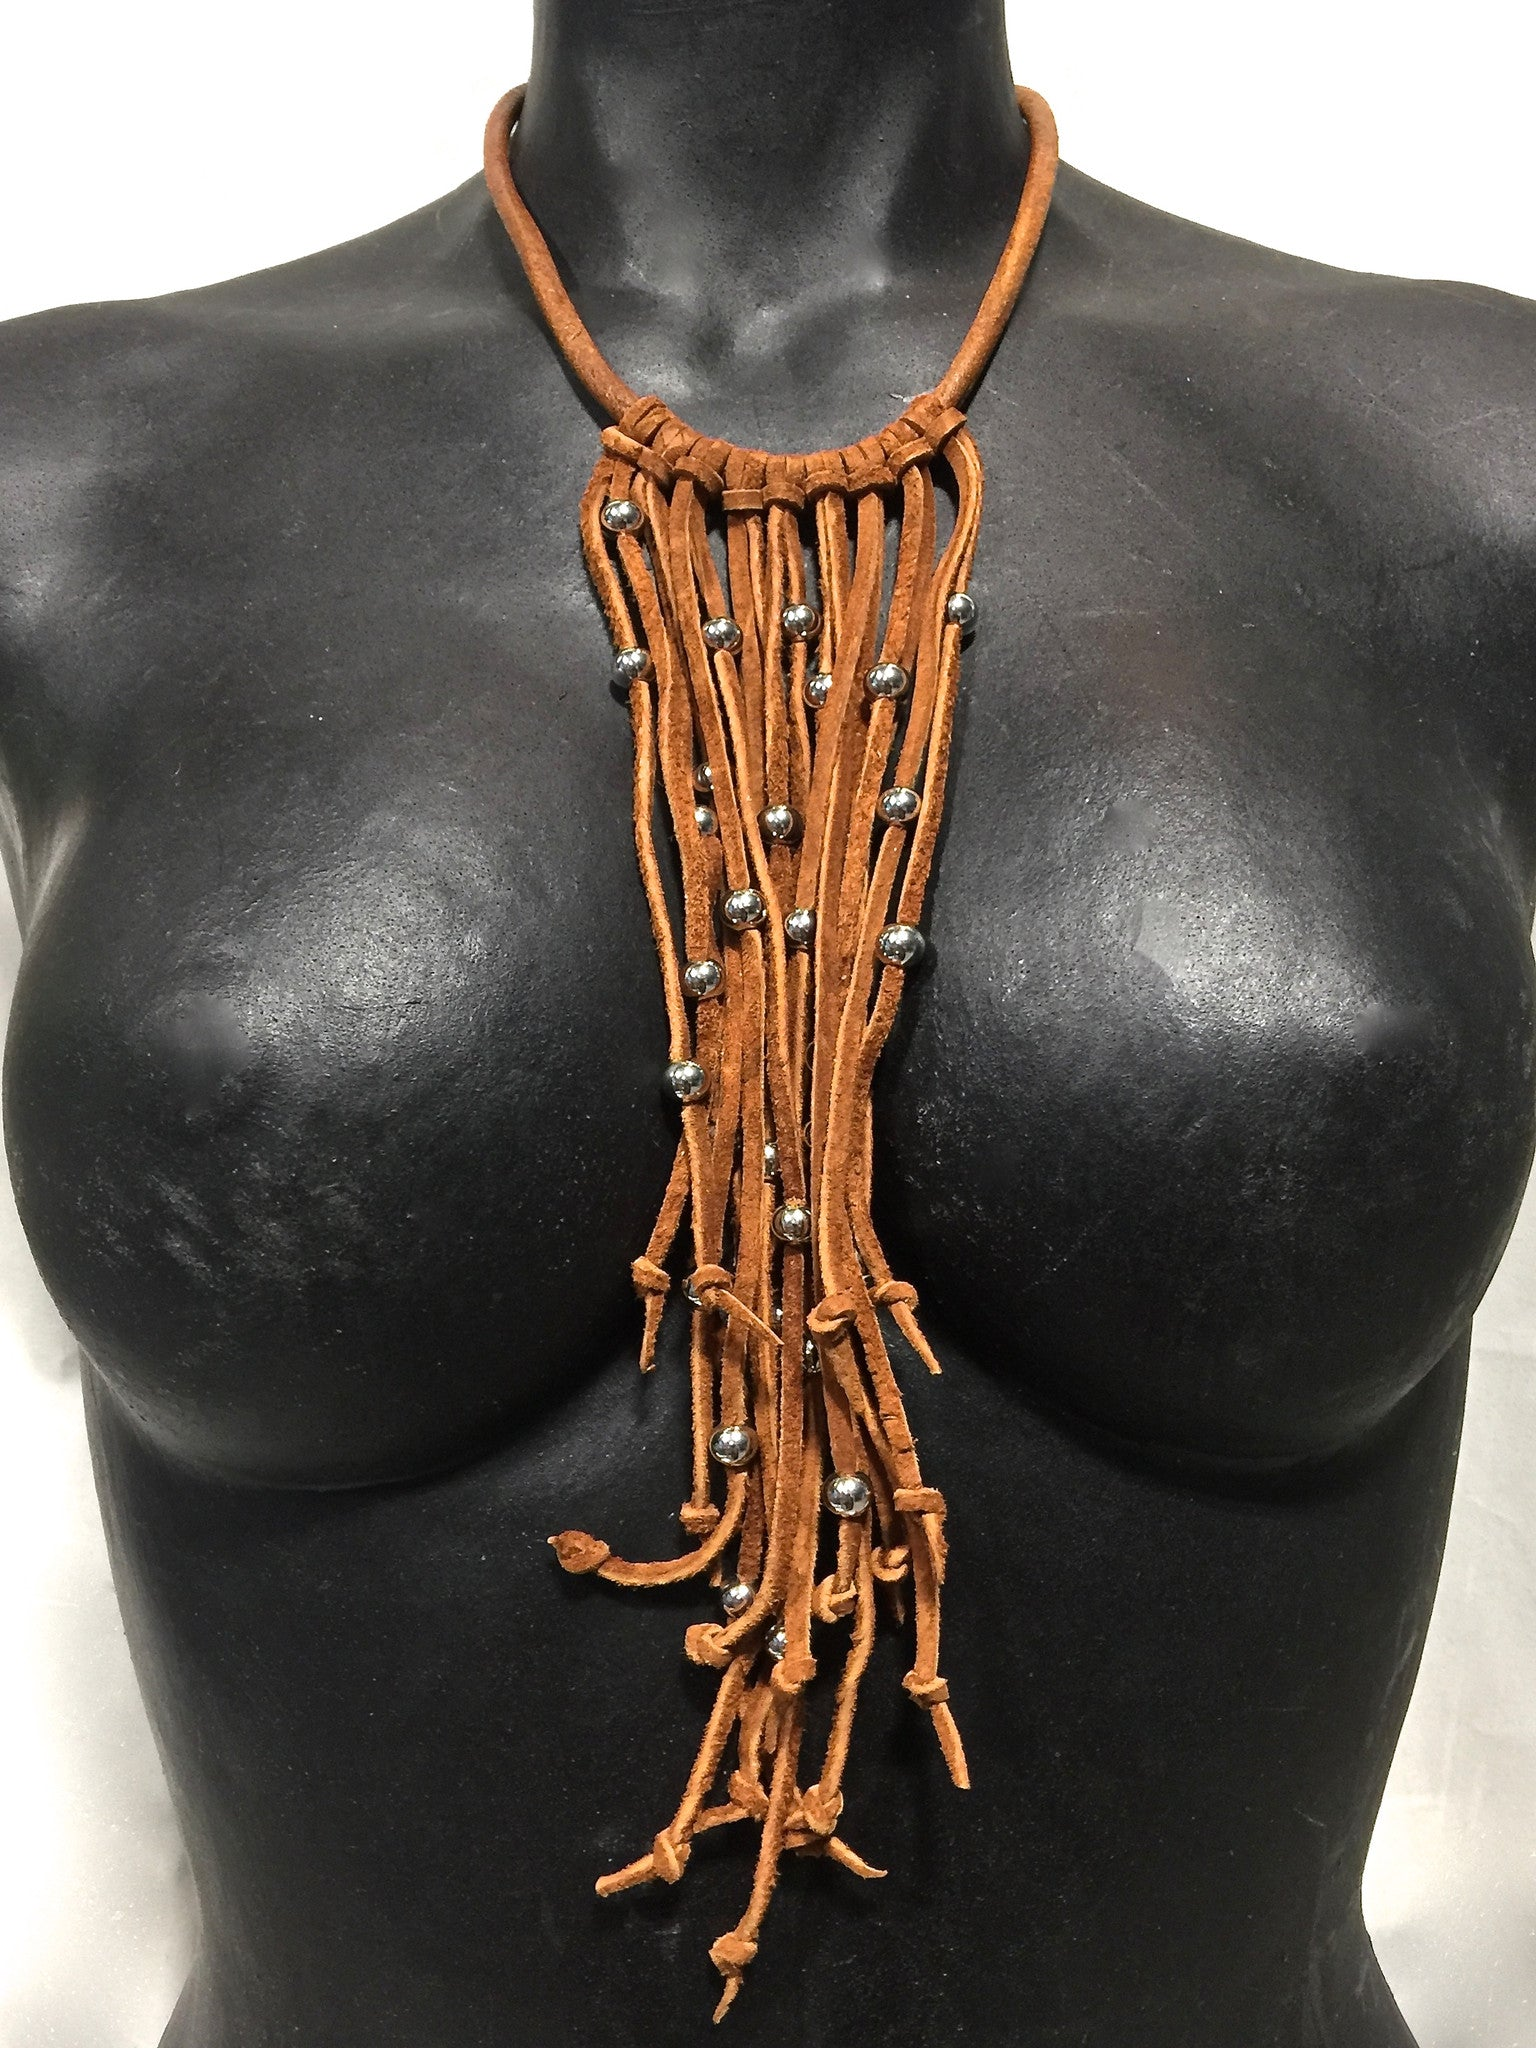 Pinball leather and suede choker necklace Rust by nyet jewelry.